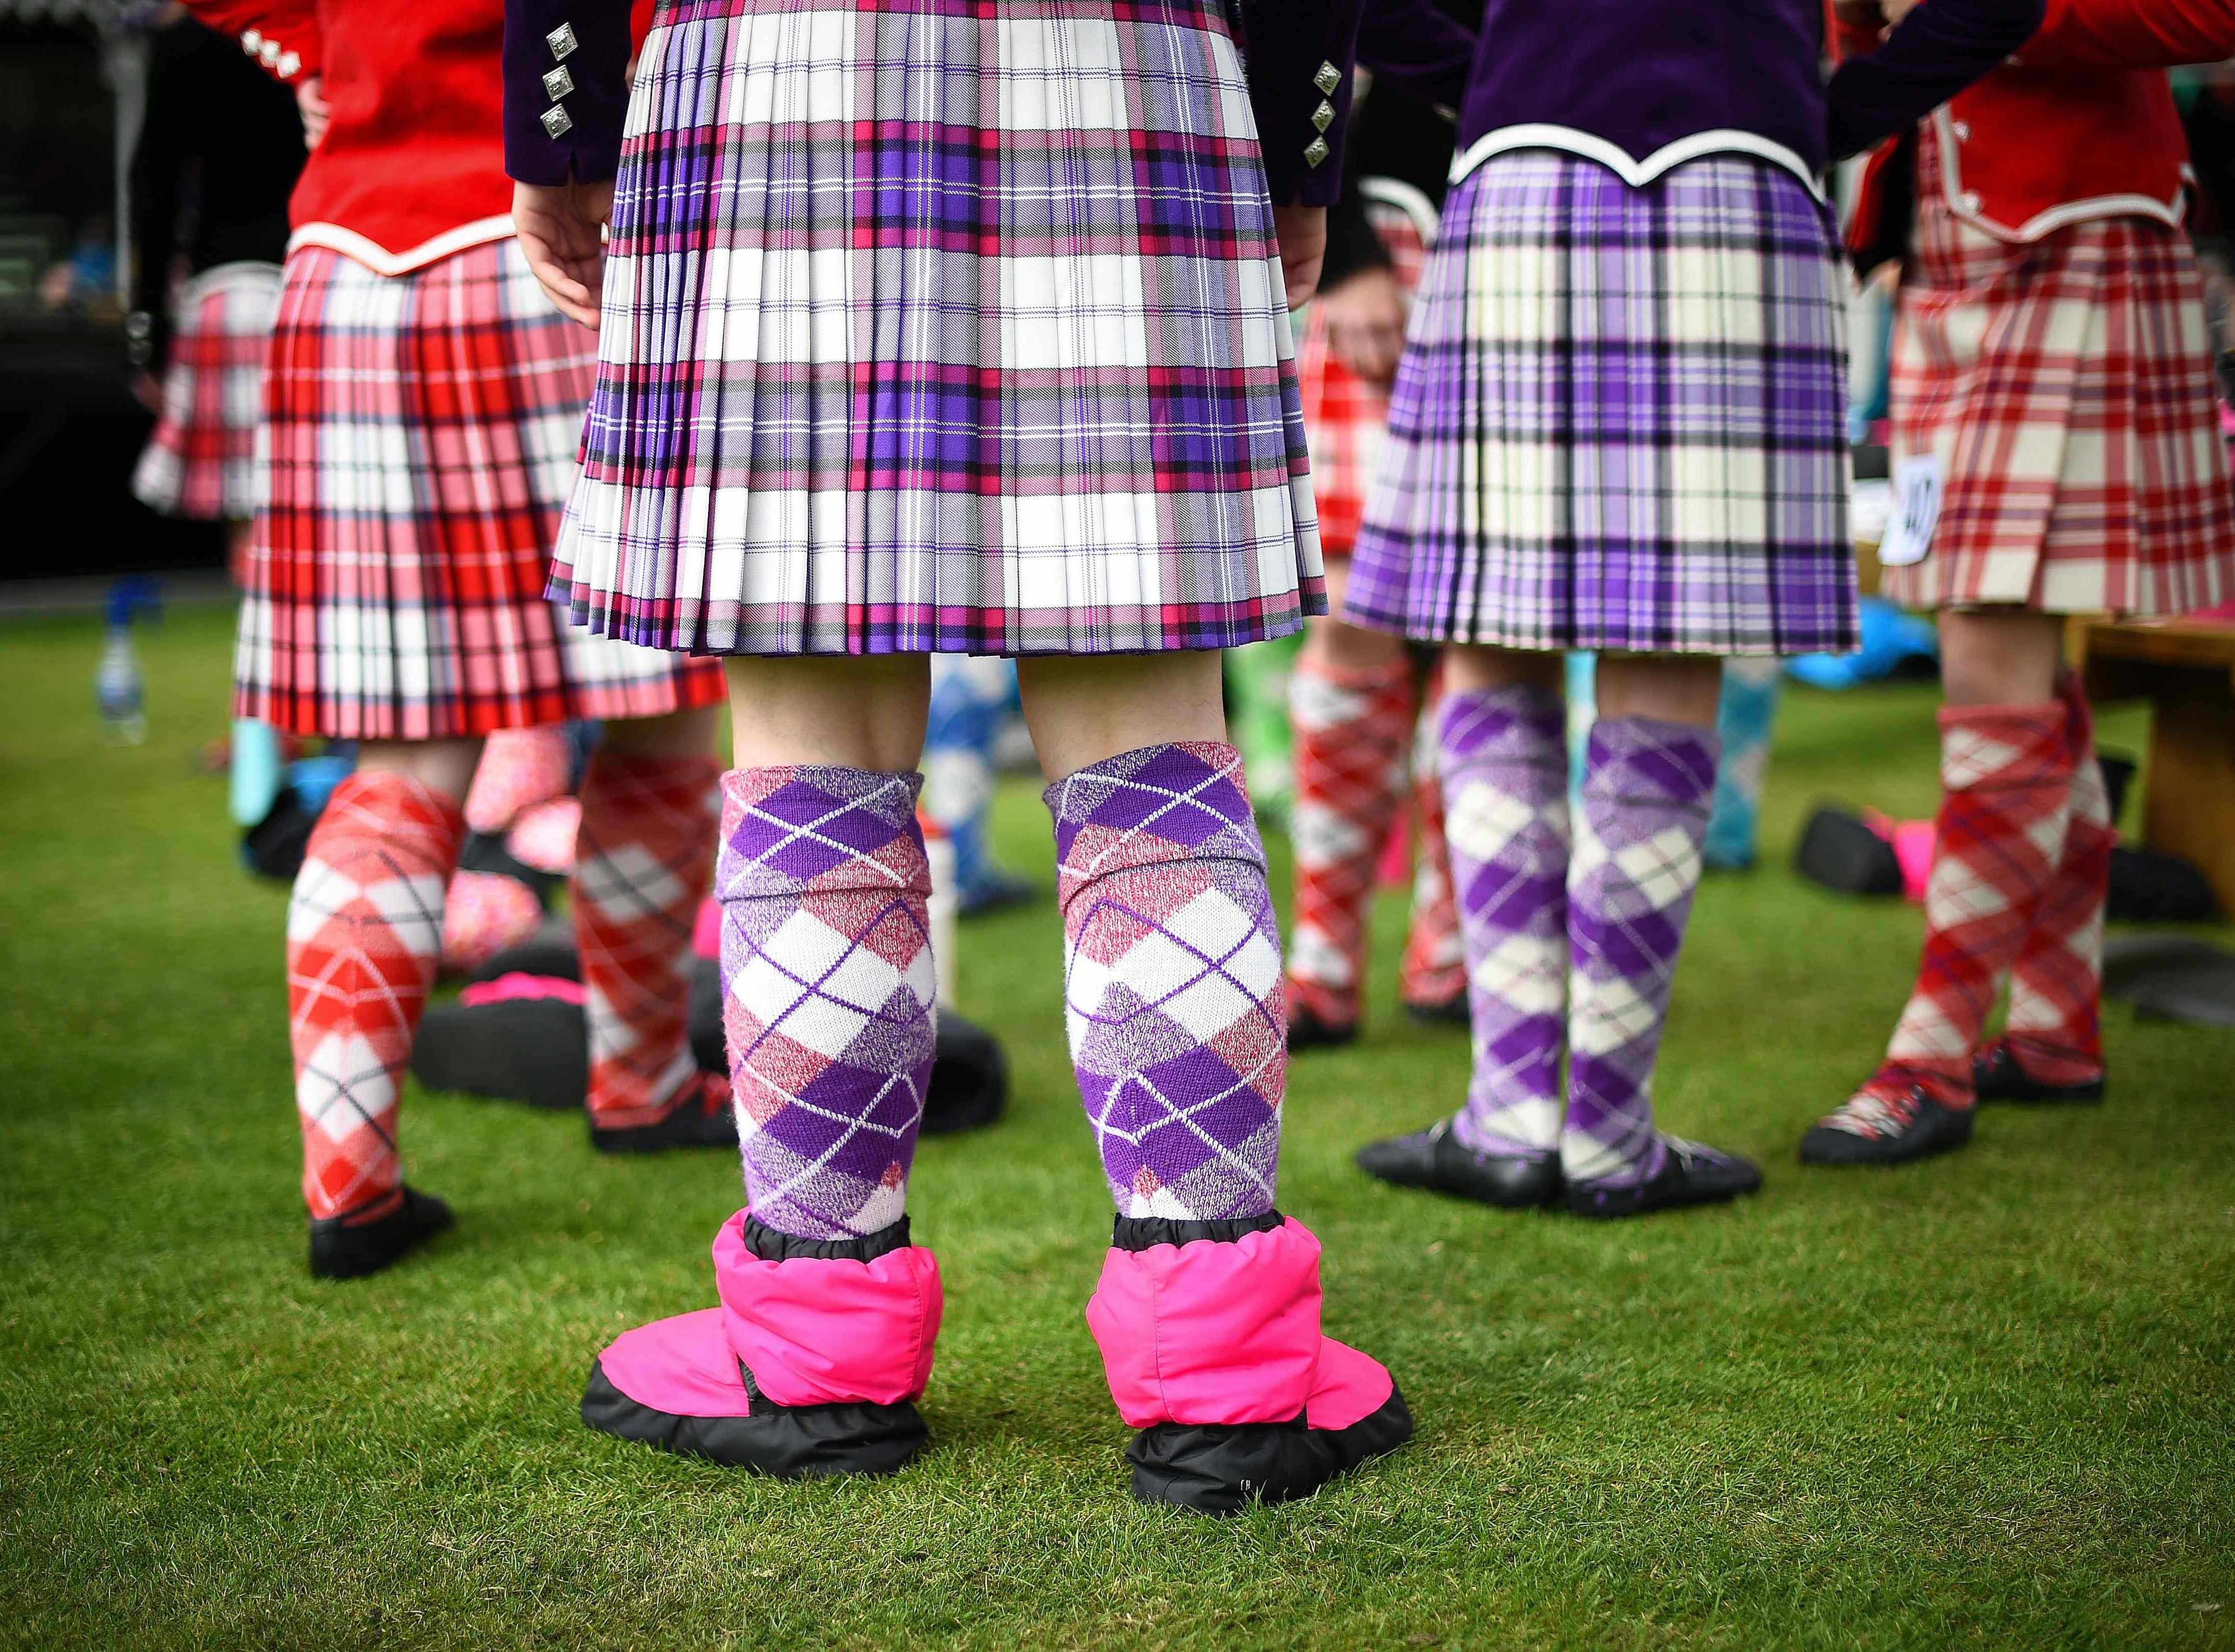 Competitors prepare to take part in the Highland Dancing event at the annual Braemar Gathering.